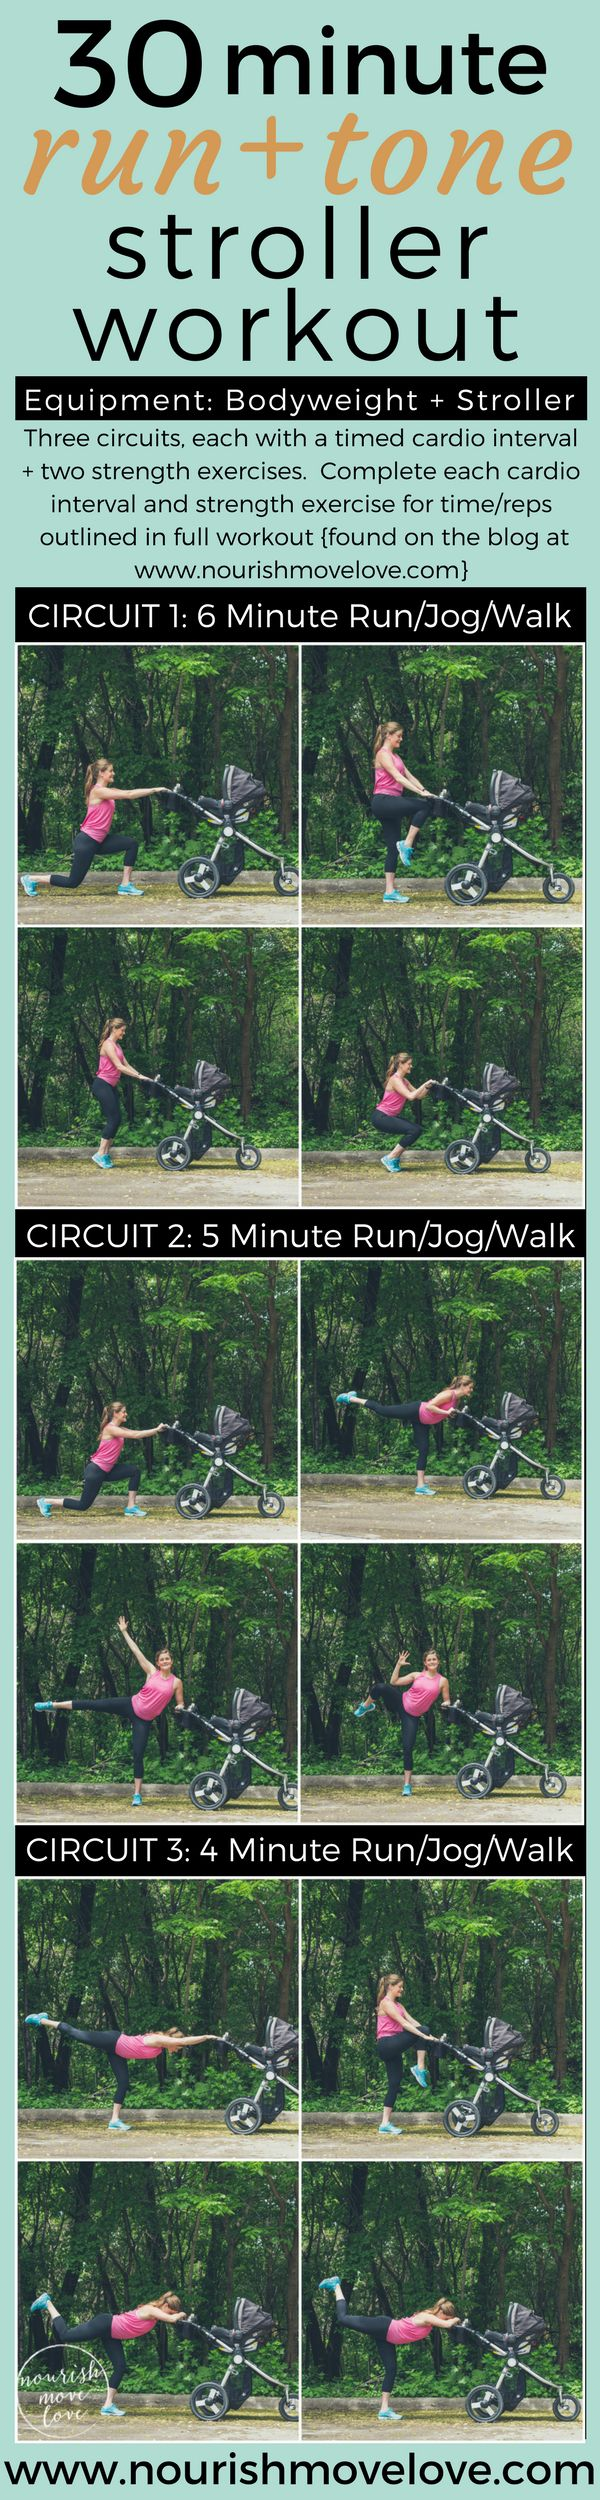 30 Minute Run + Tone Stroller Workout. Workout out new baby can be a challenge, but this mommy + me workout is a cardio + strength workout with the stroller. Run, jog, walk, PLUS strength training exercises like lunges, chair squats, leg lift, oblique crunch, knee drives, glutes | www.nourishmovelove.com